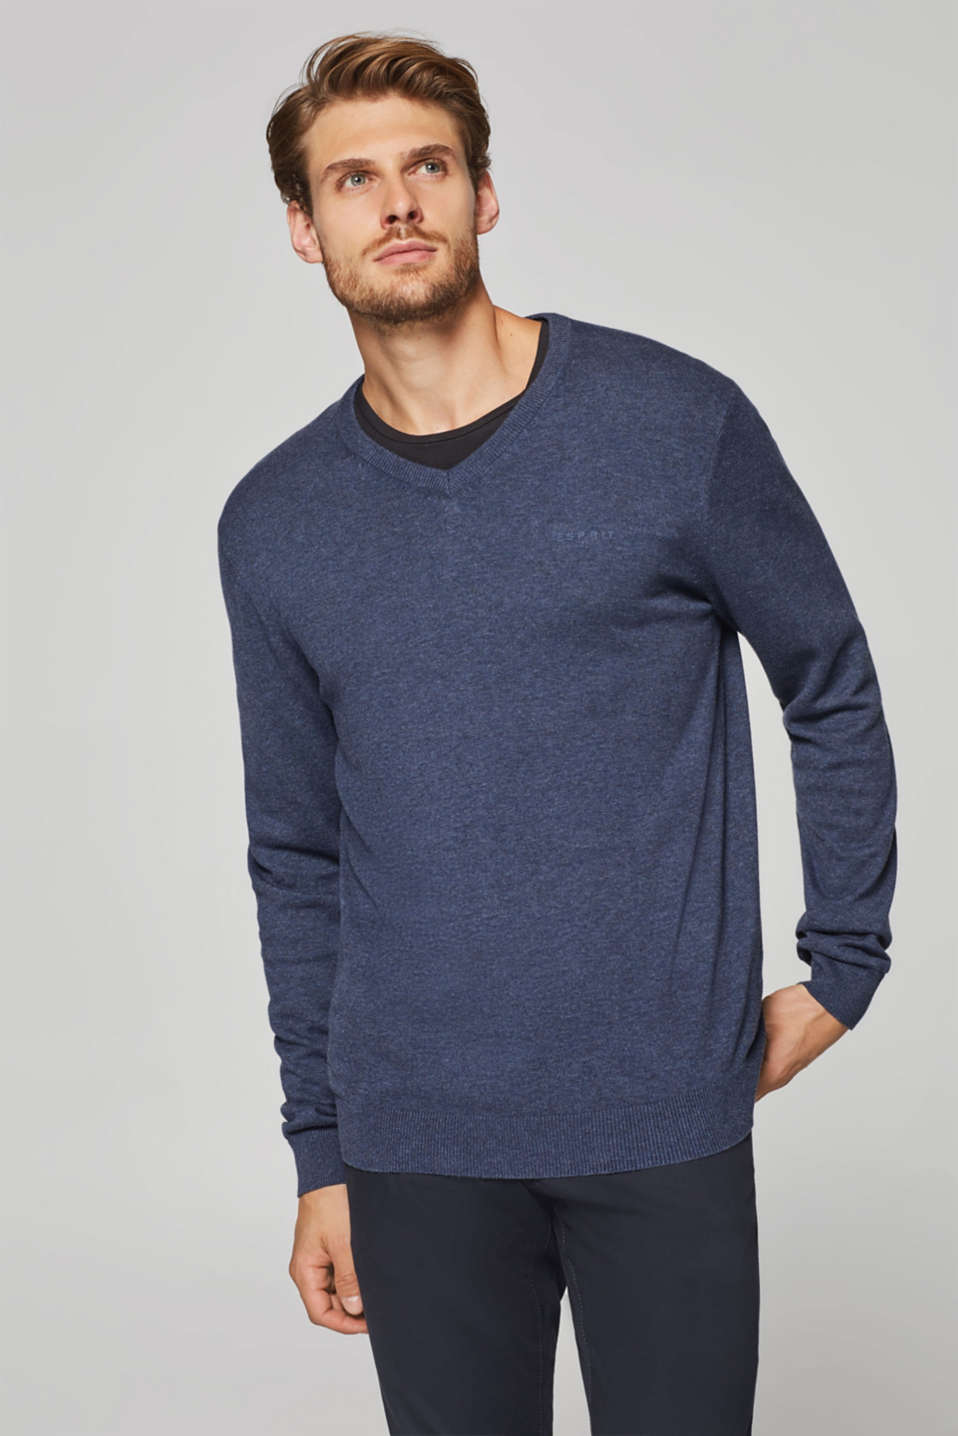 Esprit - Fine knit jumper in 100% cotton